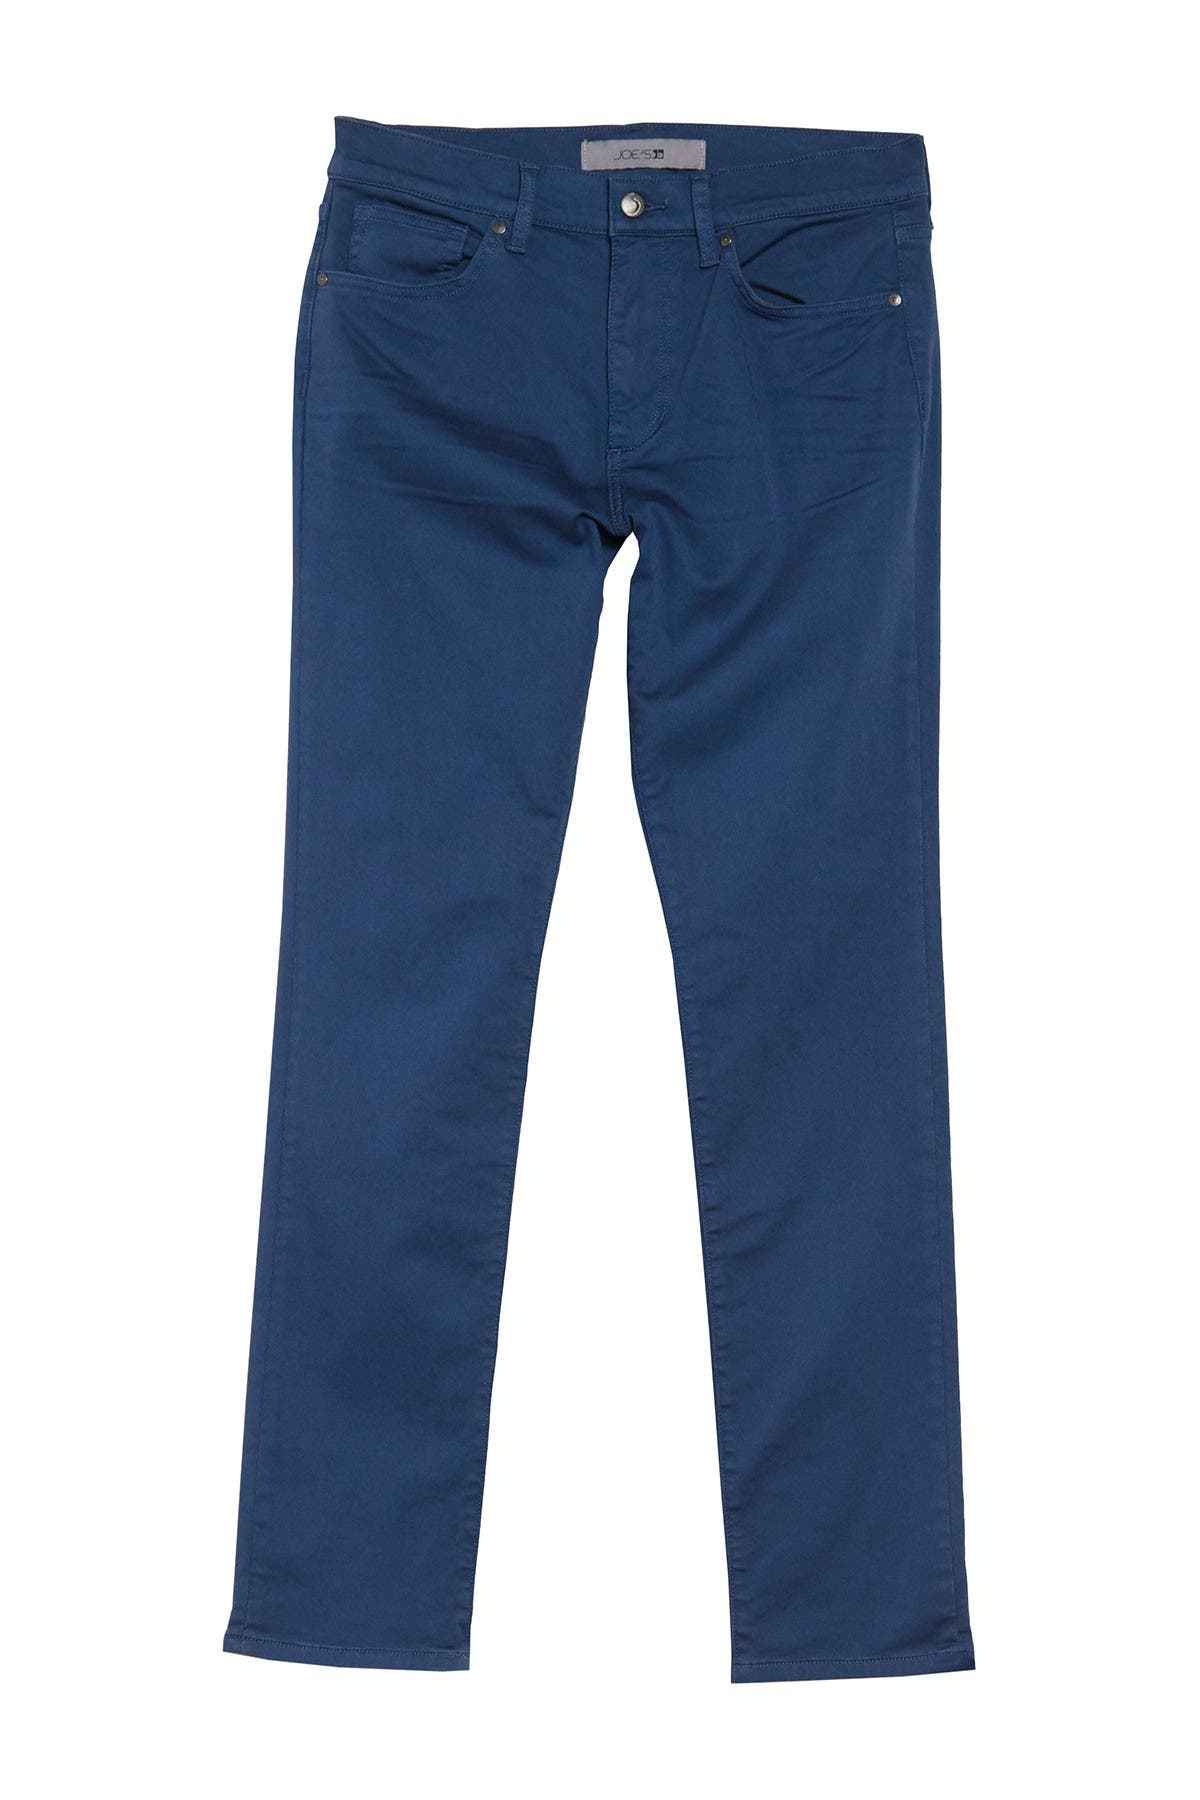 Image of Joe's Jeans The Slim Stretch Twill Jeans